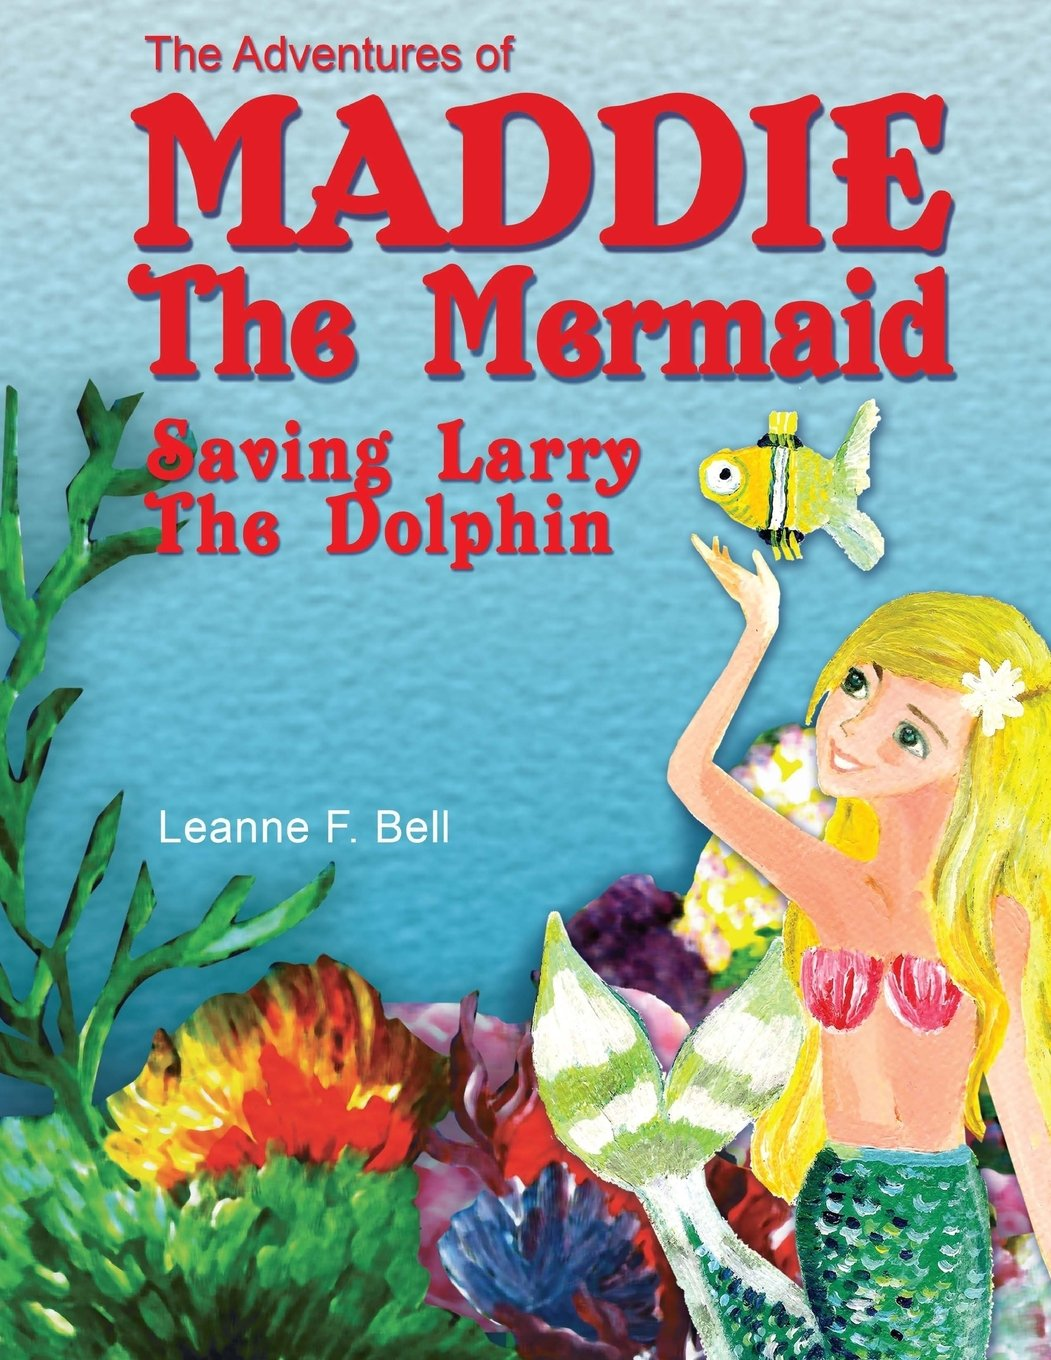 Download The Adventures of Maddie the Mermaid: Saving Larry the Dolphin (Volume 1) PDF